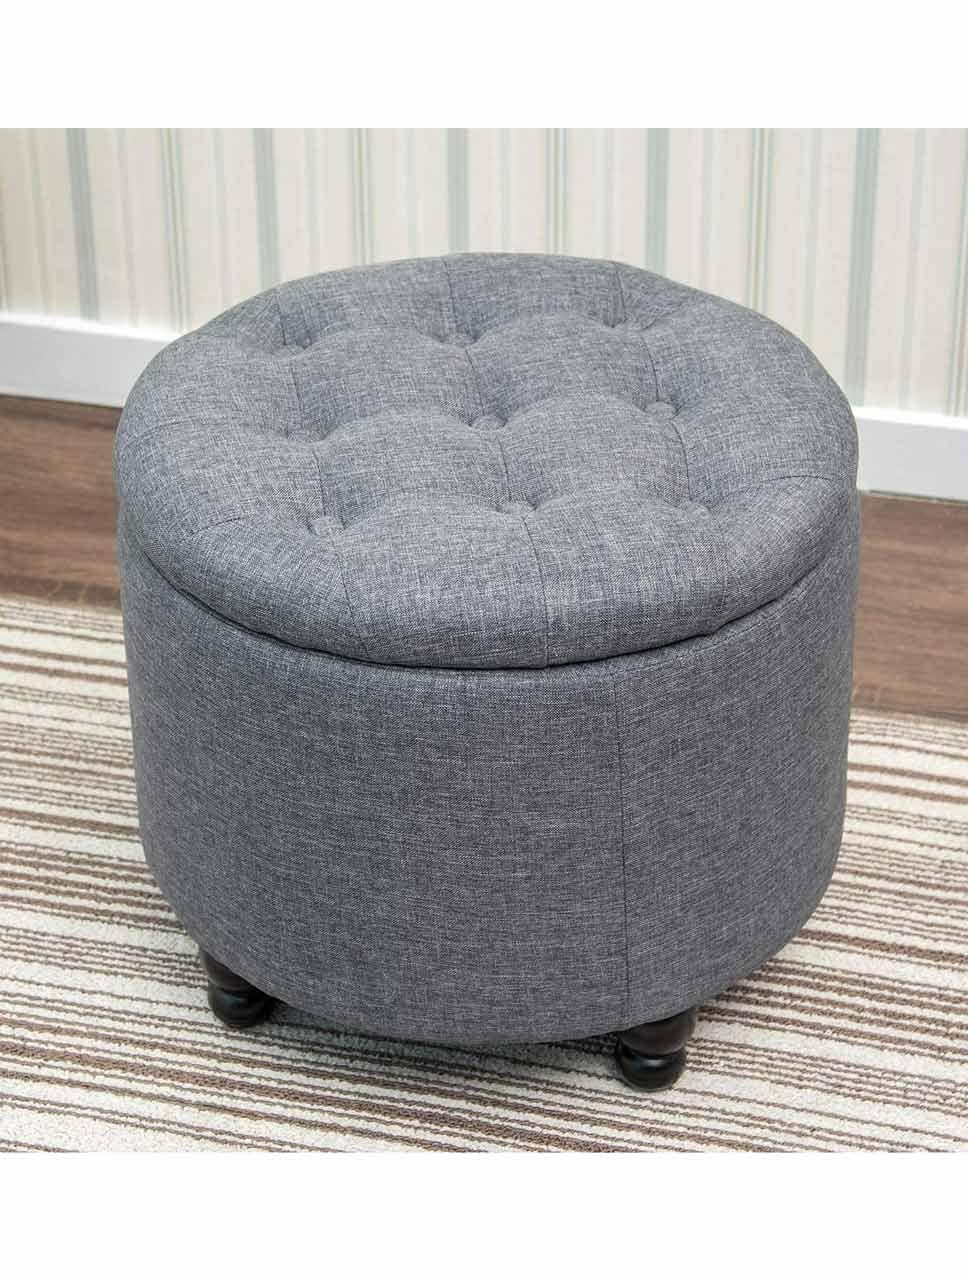 Modern Round Storage Ottomans (Fabric Cushion)